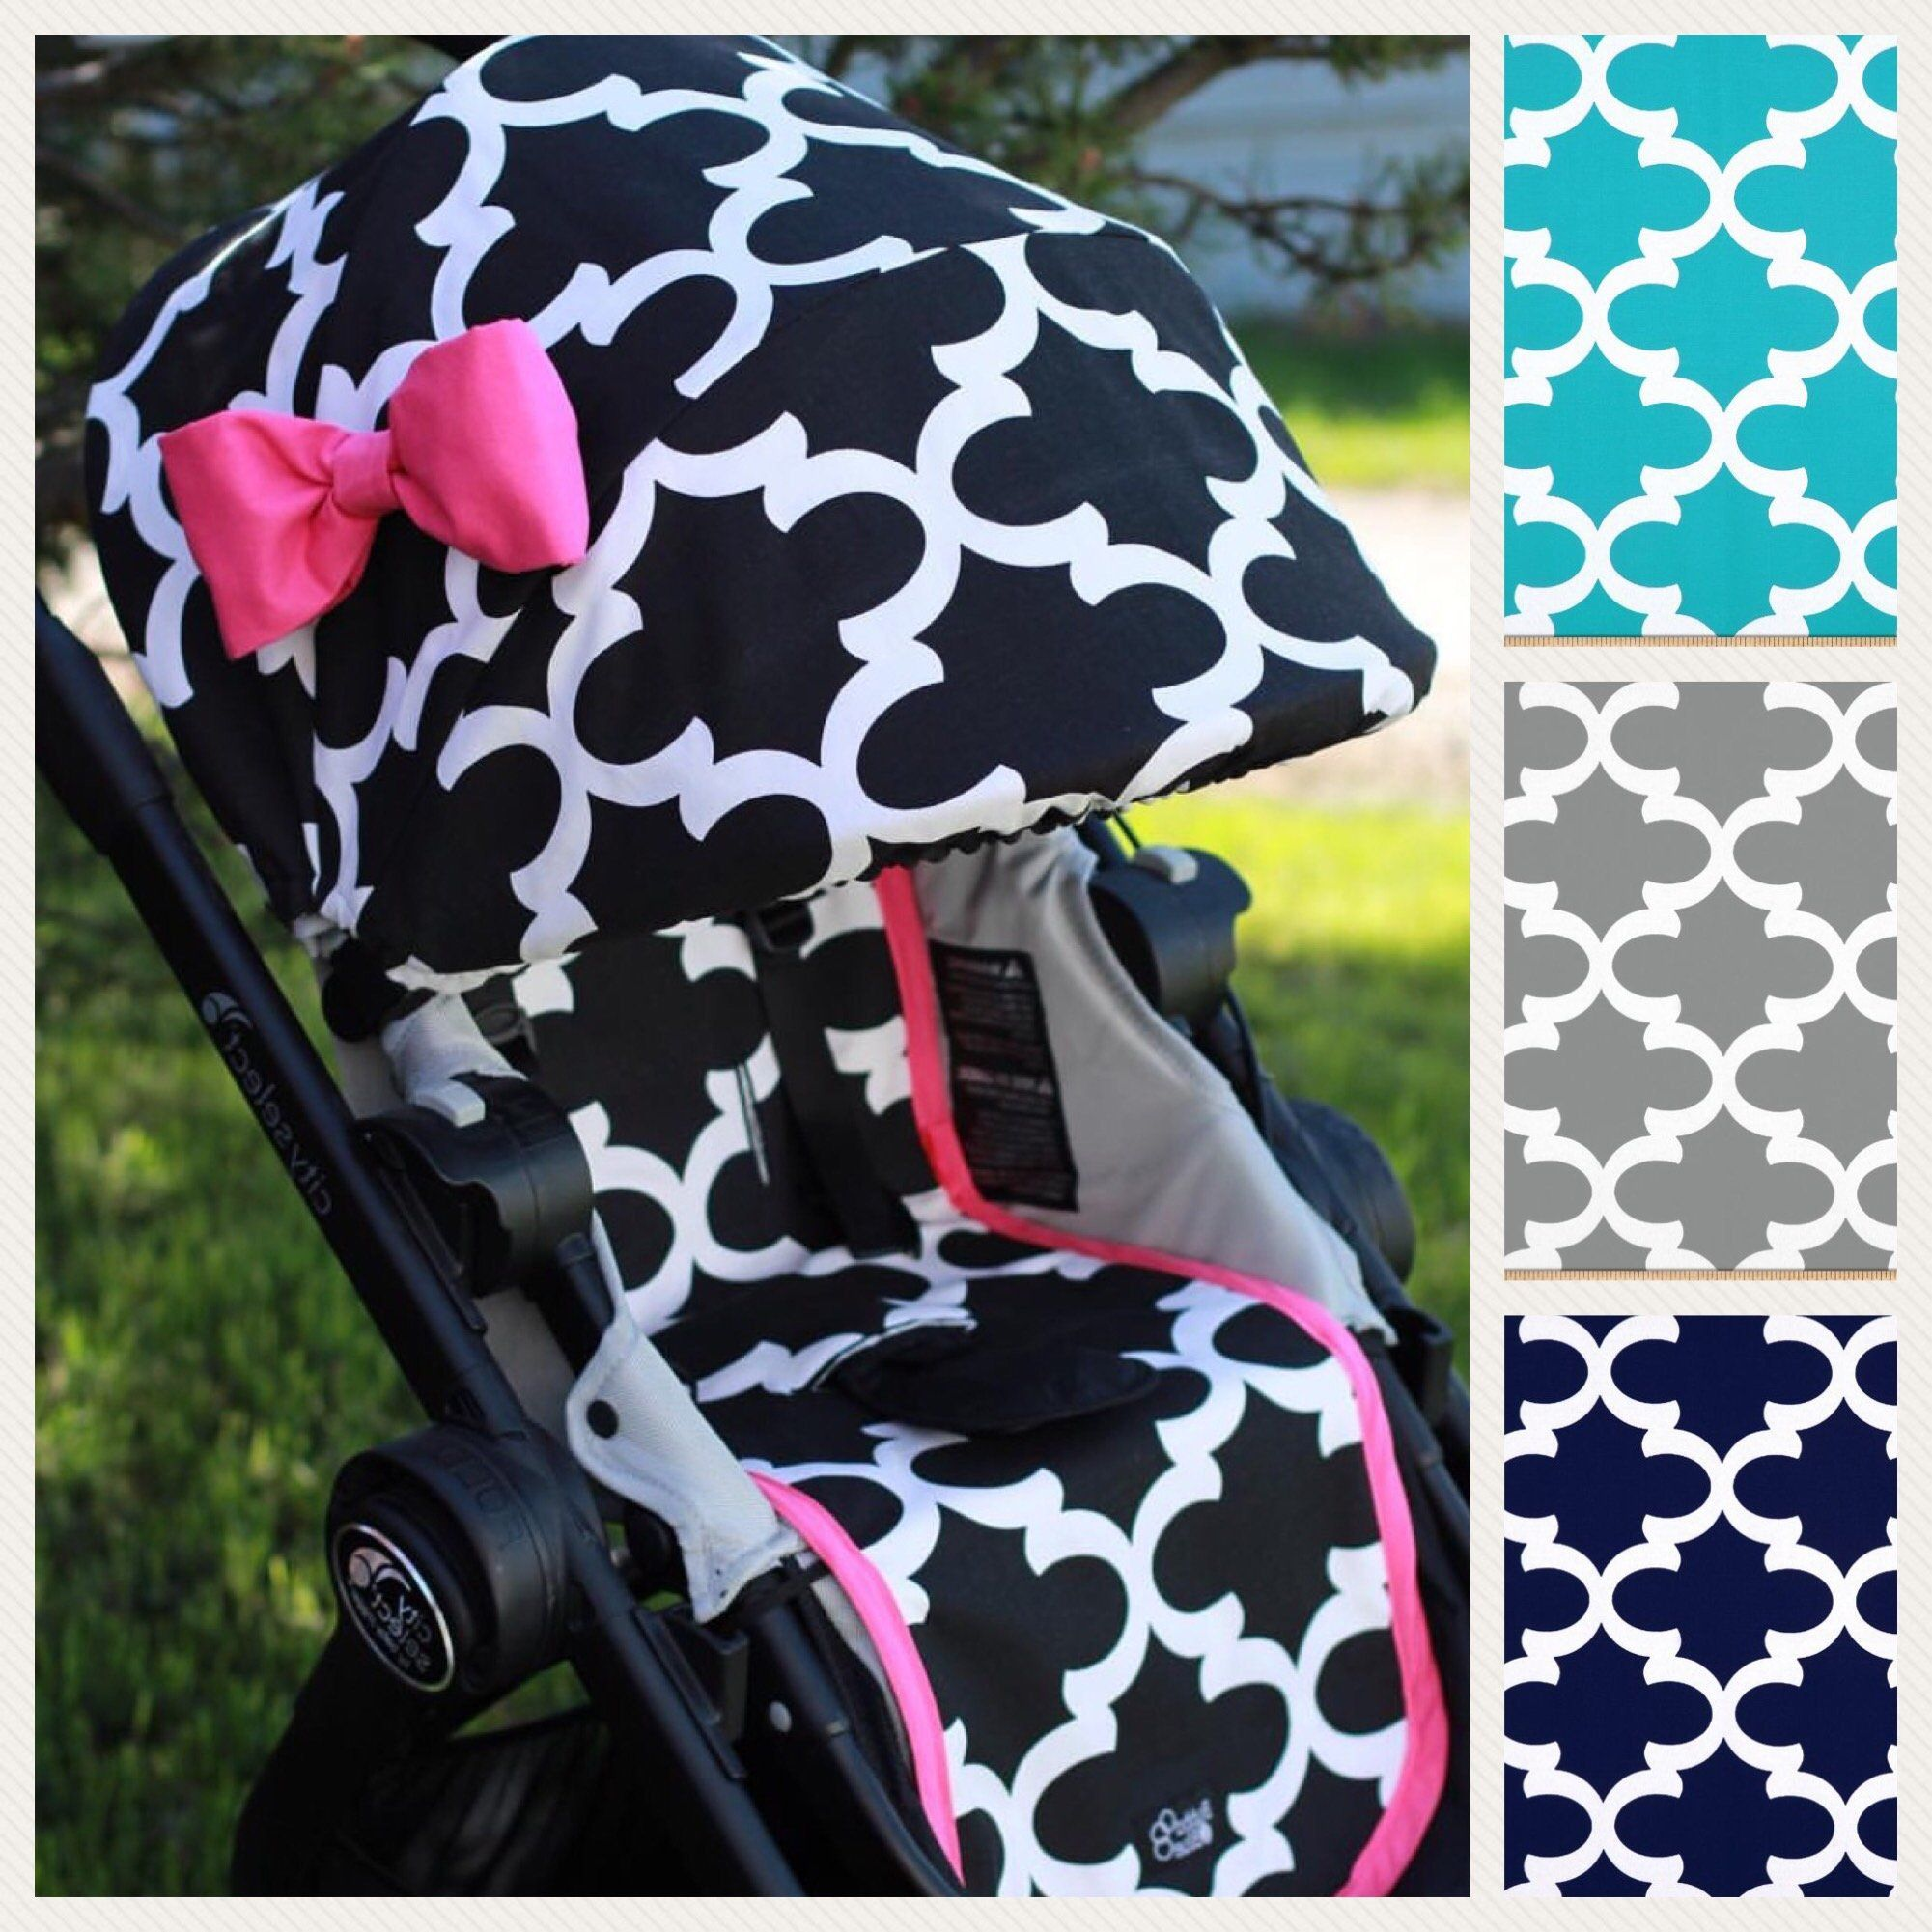 city select baby jogger These canopy covers and seat